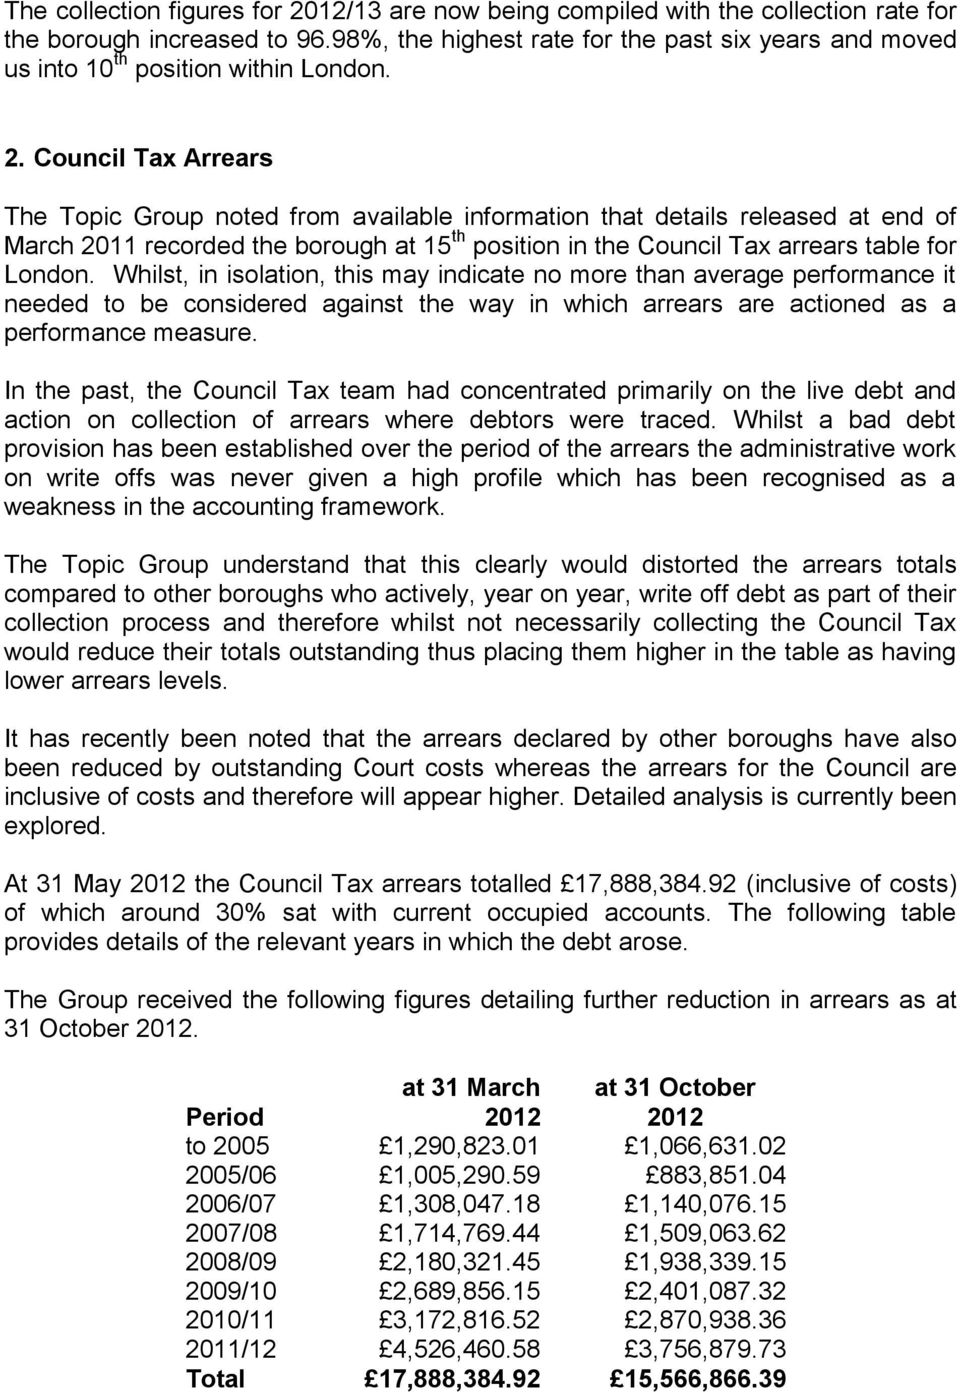 Council Tax Arrears The Topic Group noted from available information that details released at end of March 2011 recorded the borough at 15 th position in the Council Tax arrears table for London.